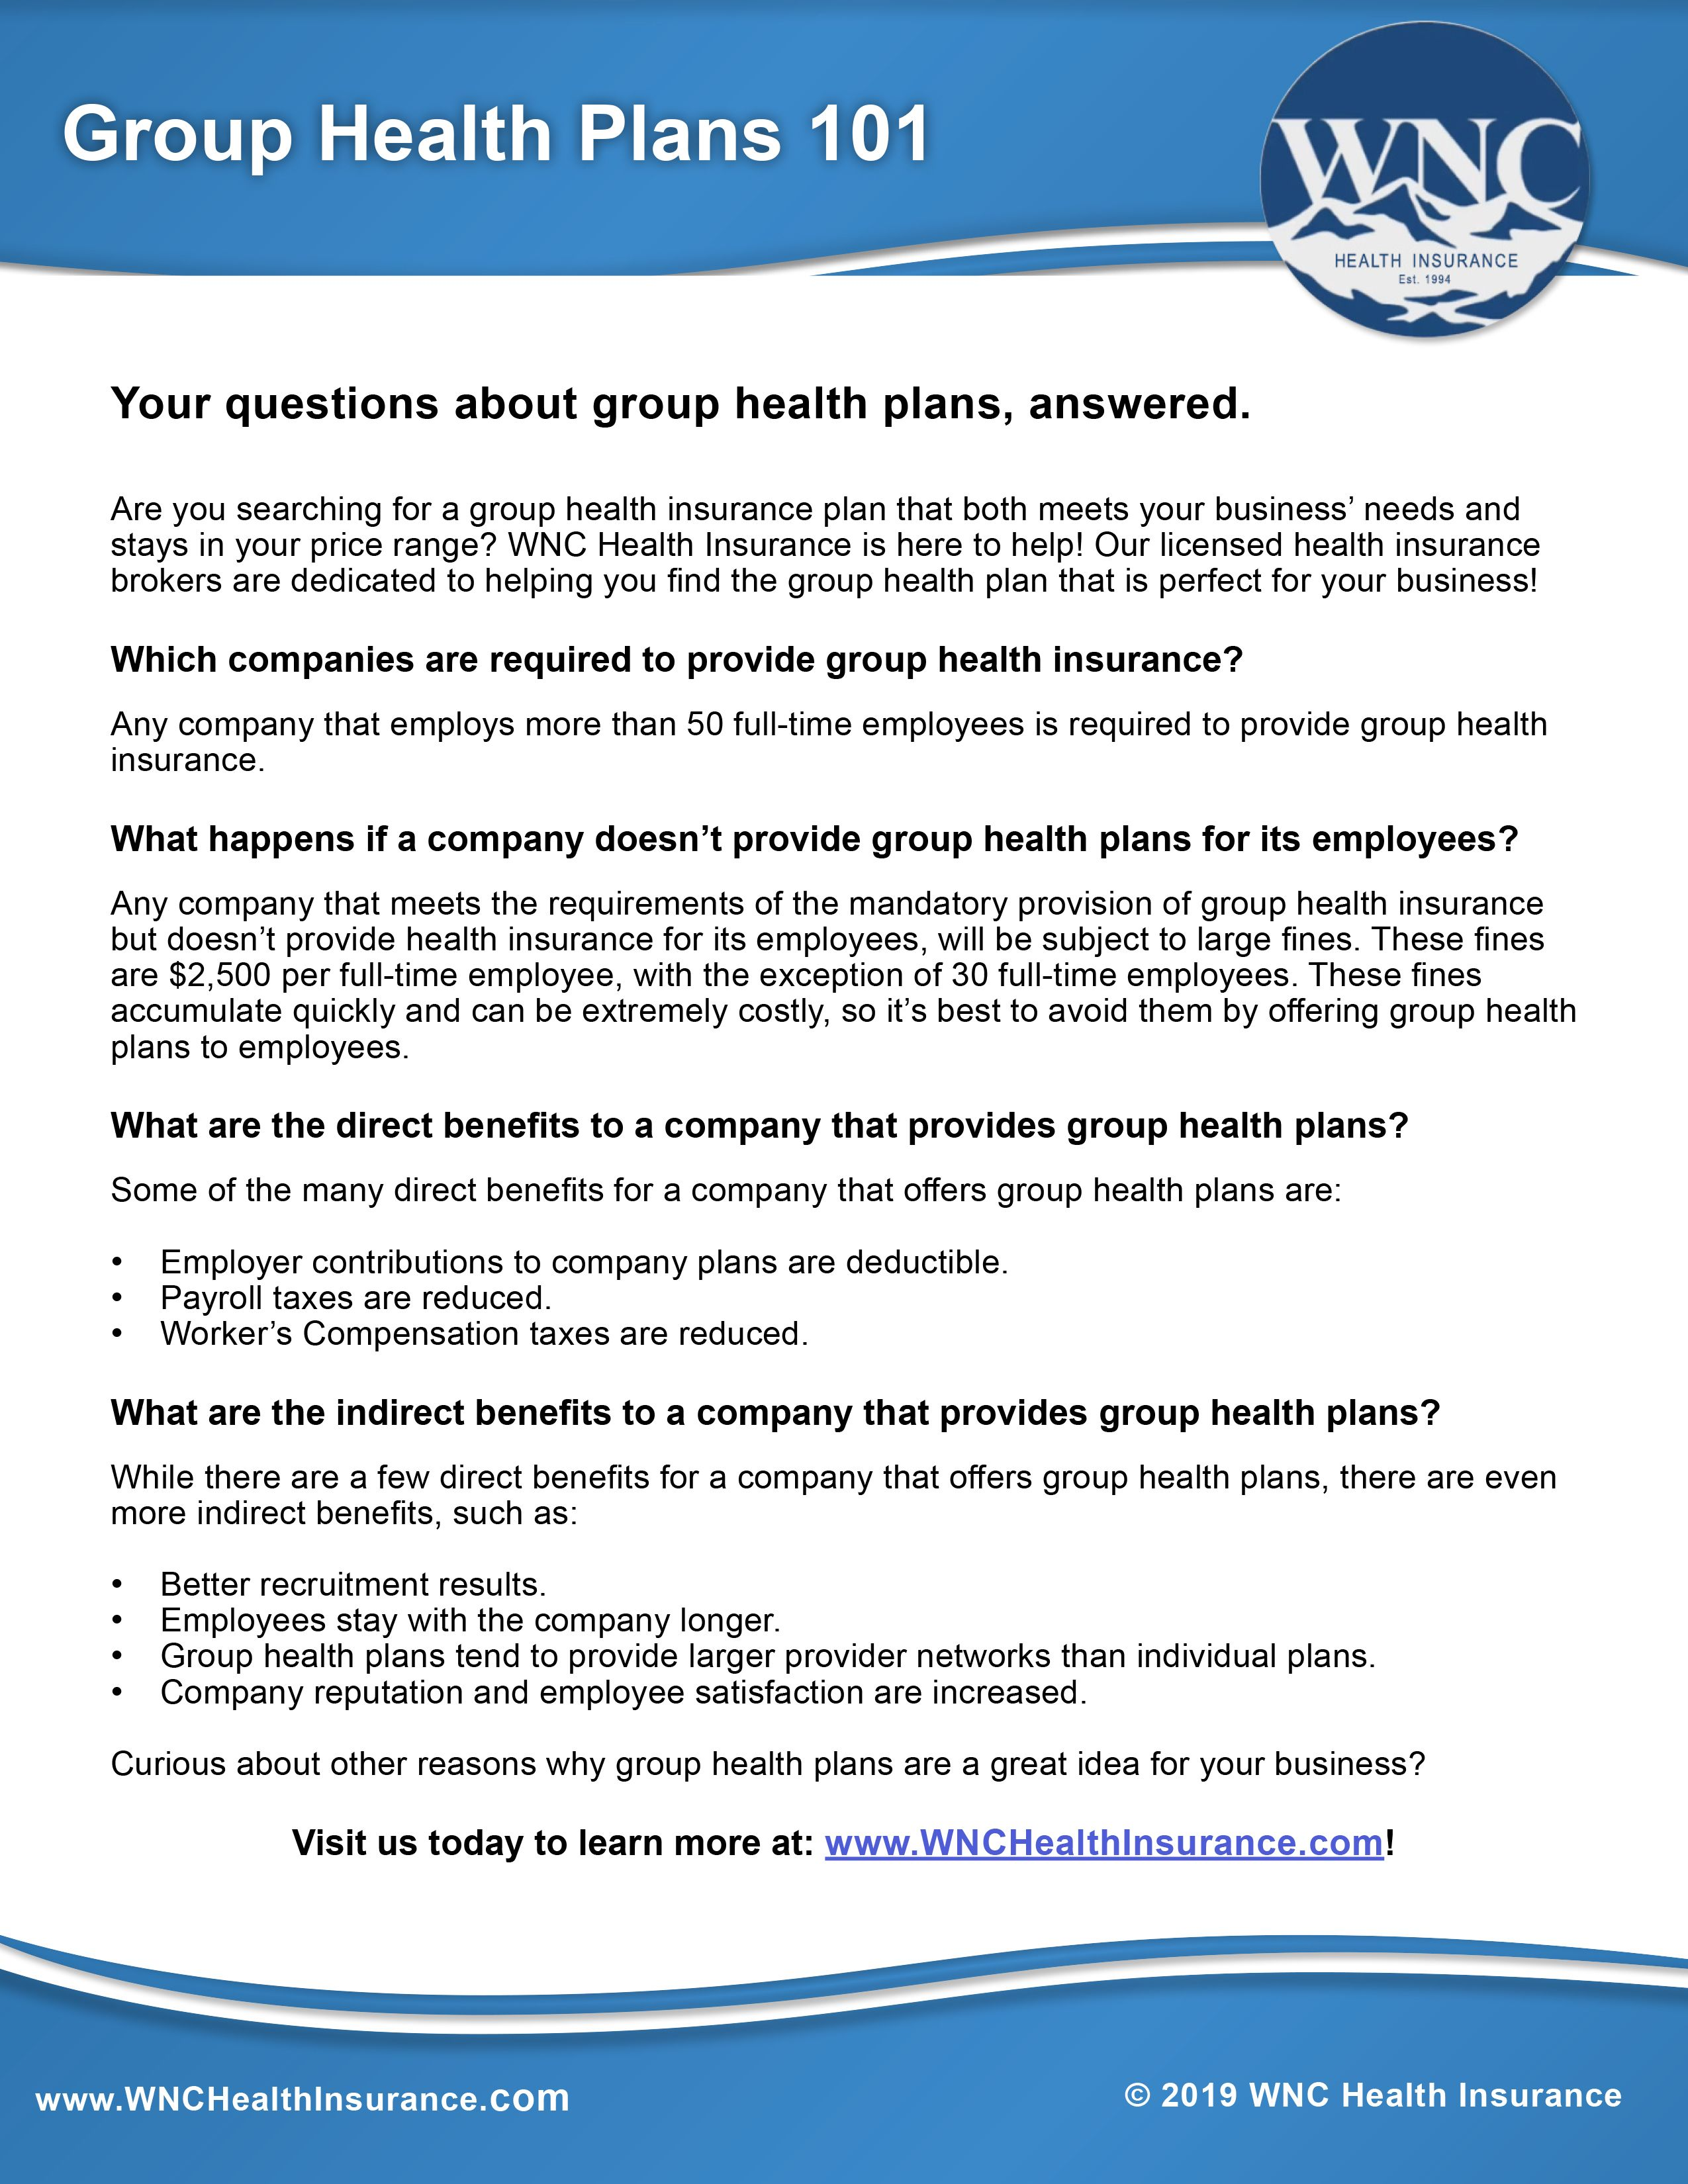 All Of Your Questions About Group Healthinsurance Plans